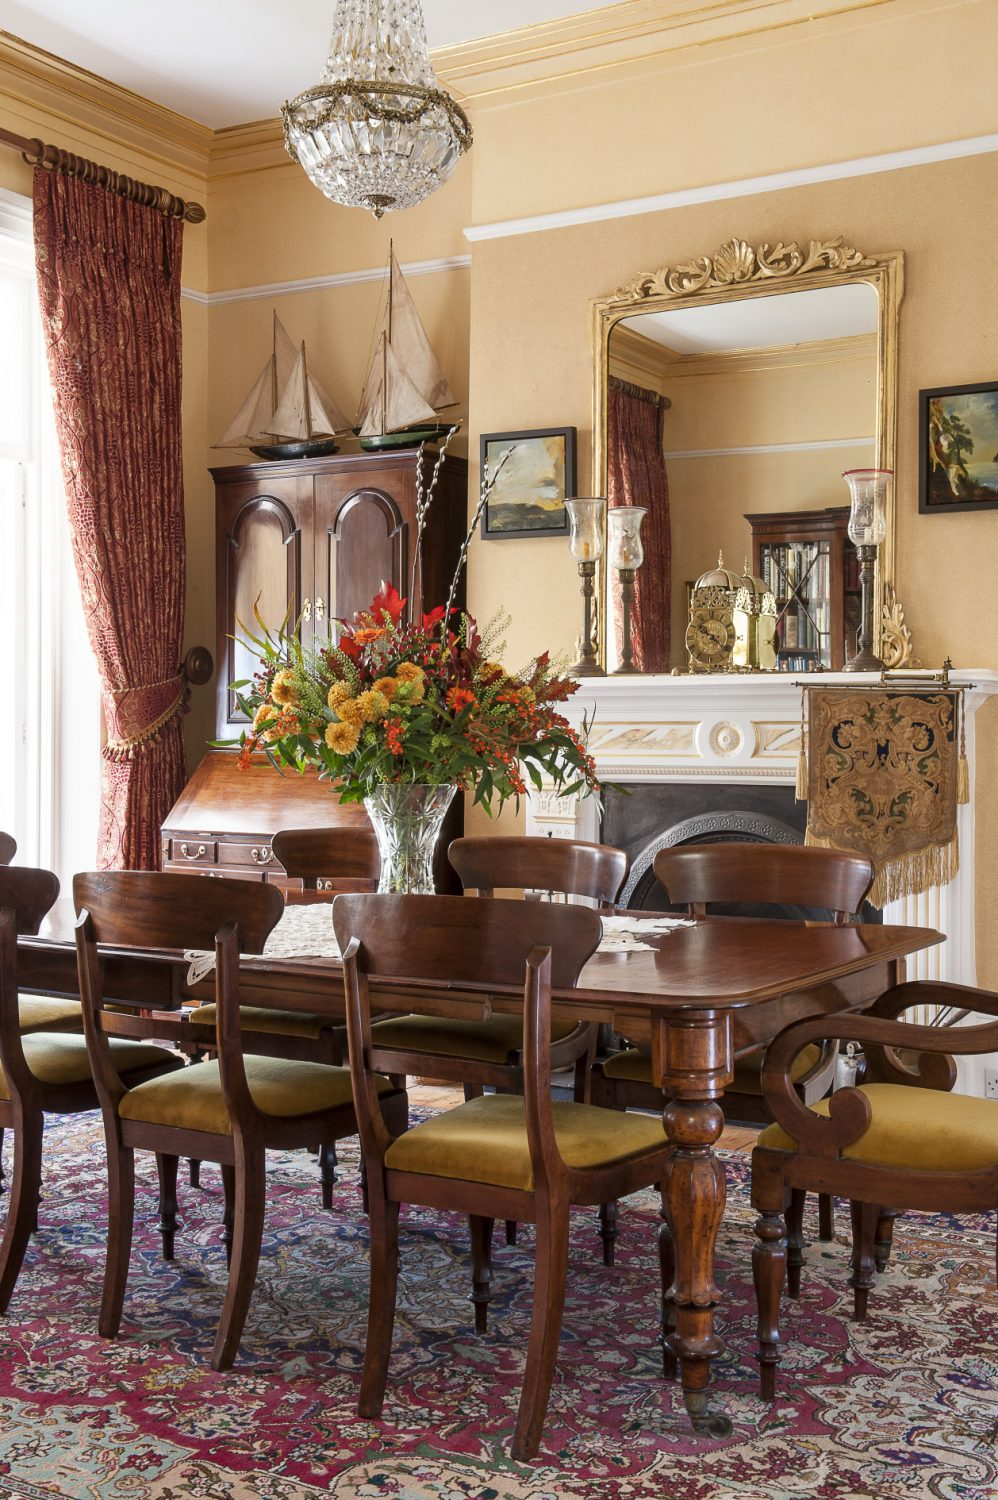 In the formal dining room, above the fireplace, is an elegant 19th century double action brass timepiece. Behind the clock is a Victorian gilt mirror, the twin of which tops a fireplace in Osborne House